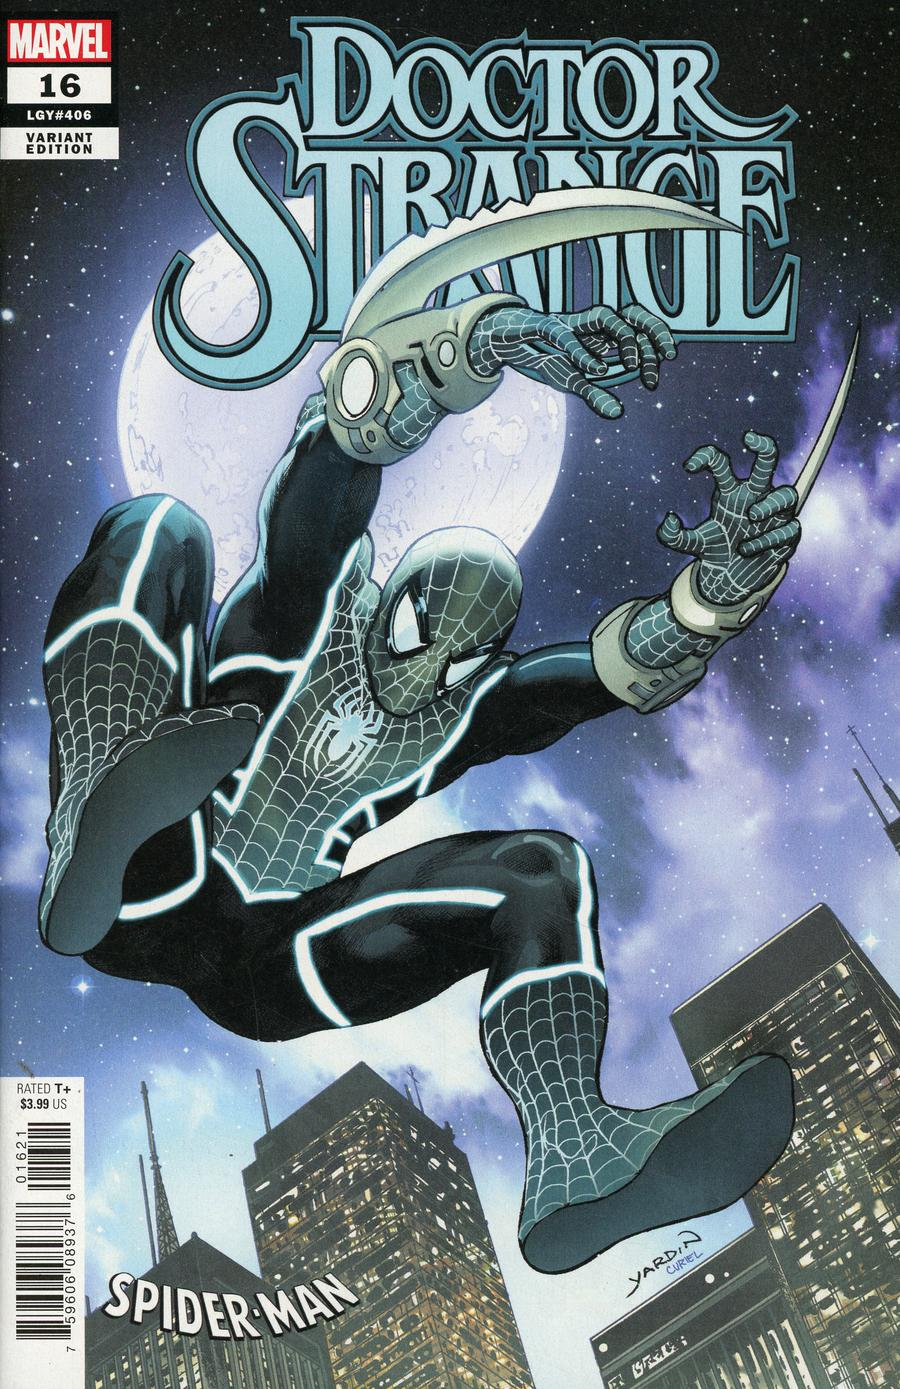 Doctor Strange Vol 5 #16 Cover B Variant David Yardin Spider-Man Stealth Suit Cover